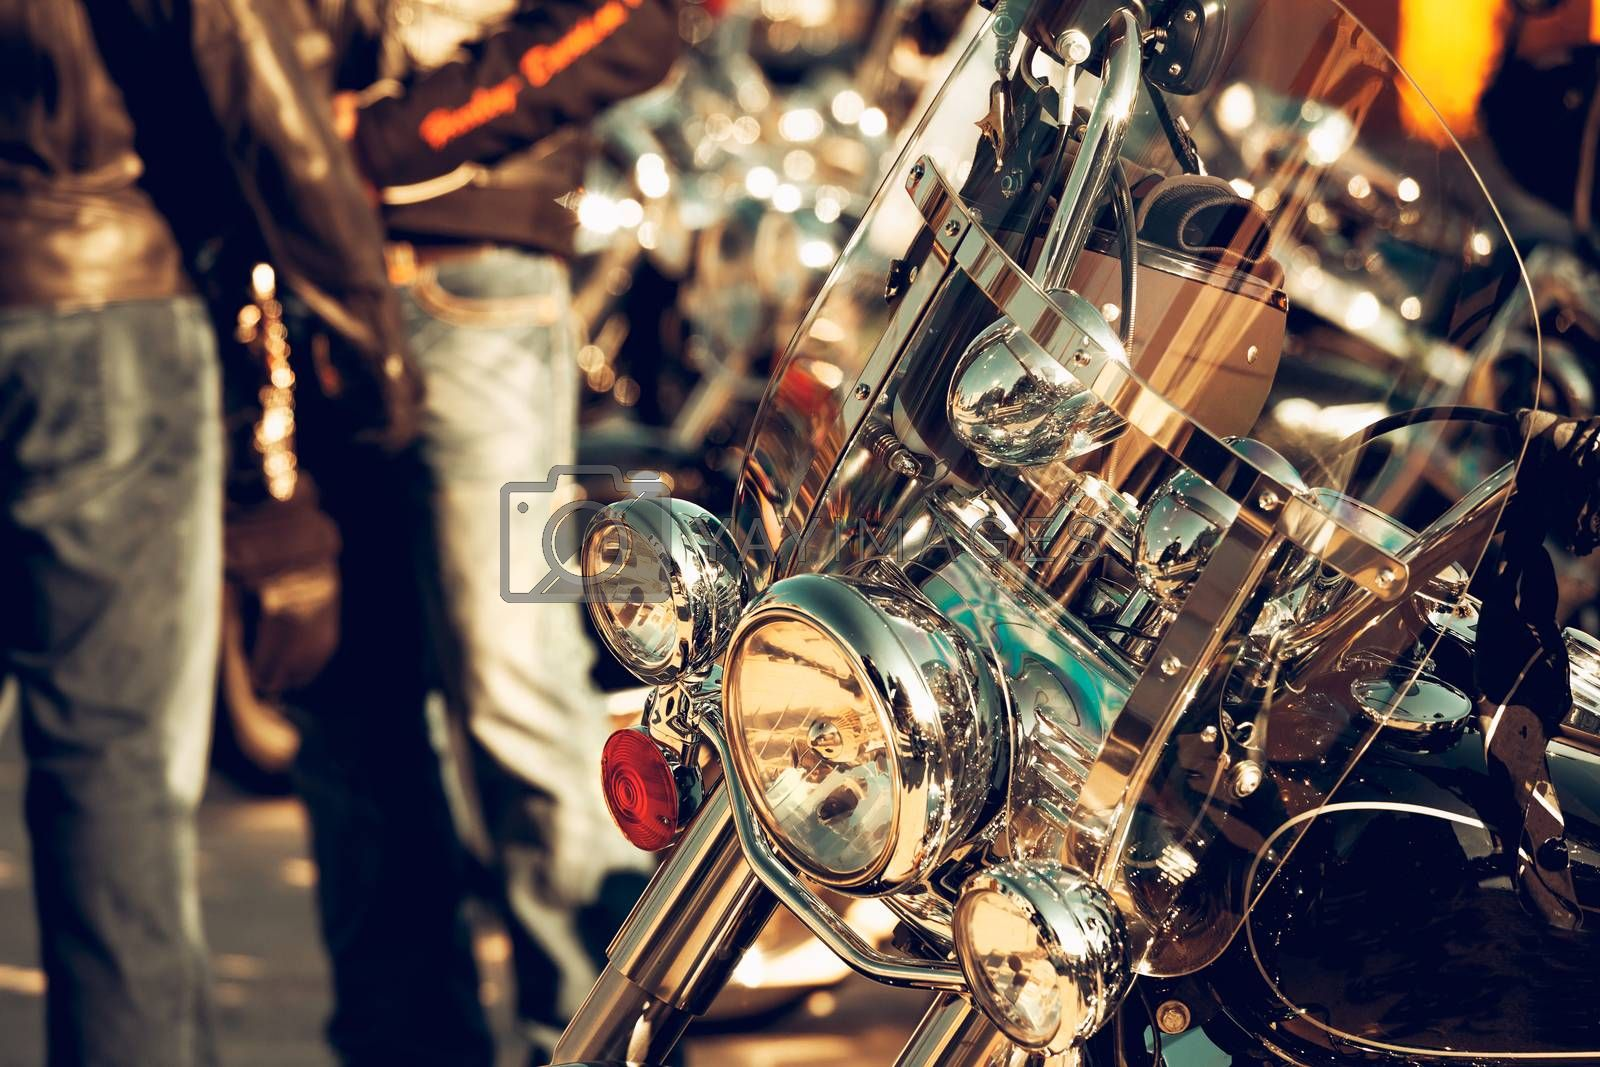 Close Up photo of a Vintage Looking Motorbike. Shiny Steel Vehicle. Bikers Taking a Break from the Road Trip Ride. Active Lifestyle. Travel and Tourism. Enjoying Life and Freedom.